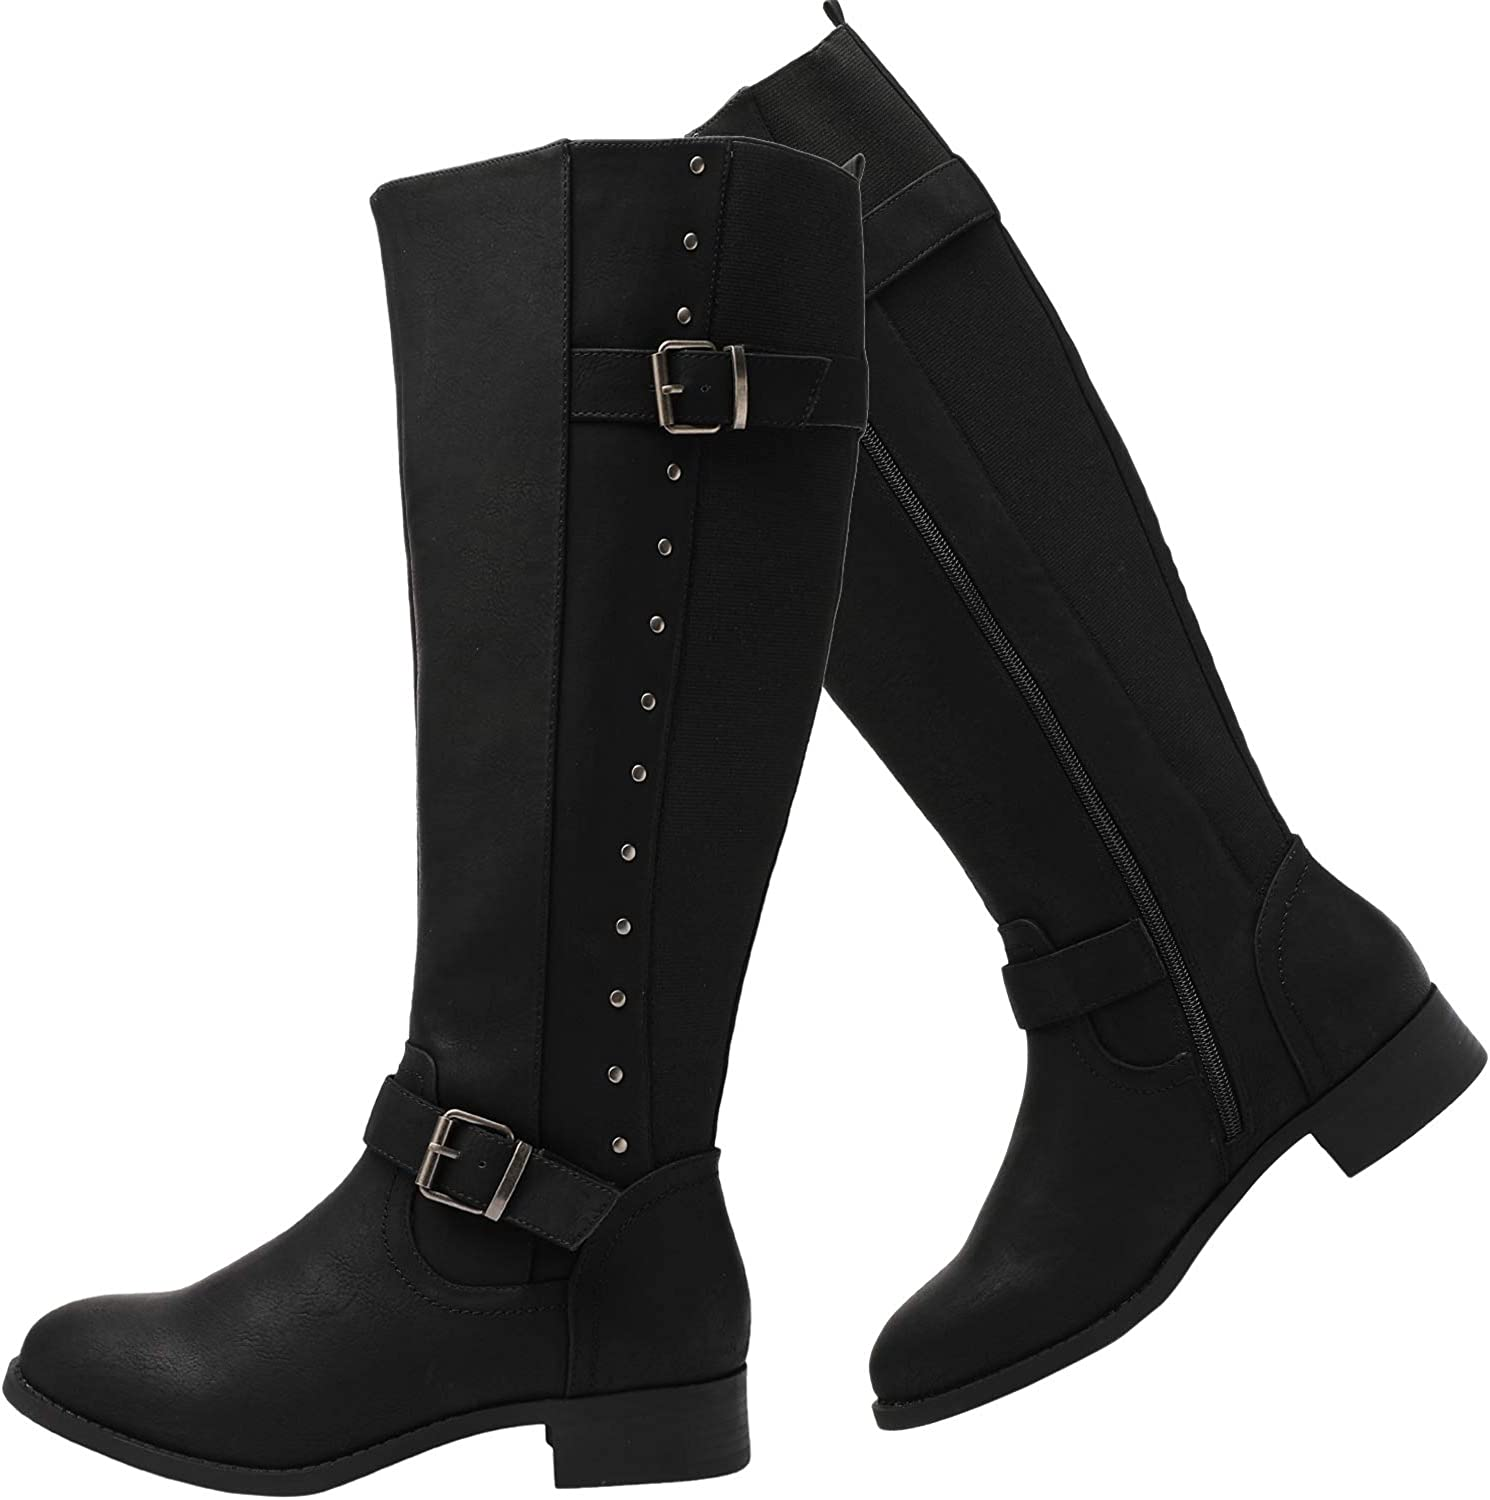 Ladies Wide Calf Boots Womens Winter Gusset Heel Fashion Comfy Casual Shoes Size